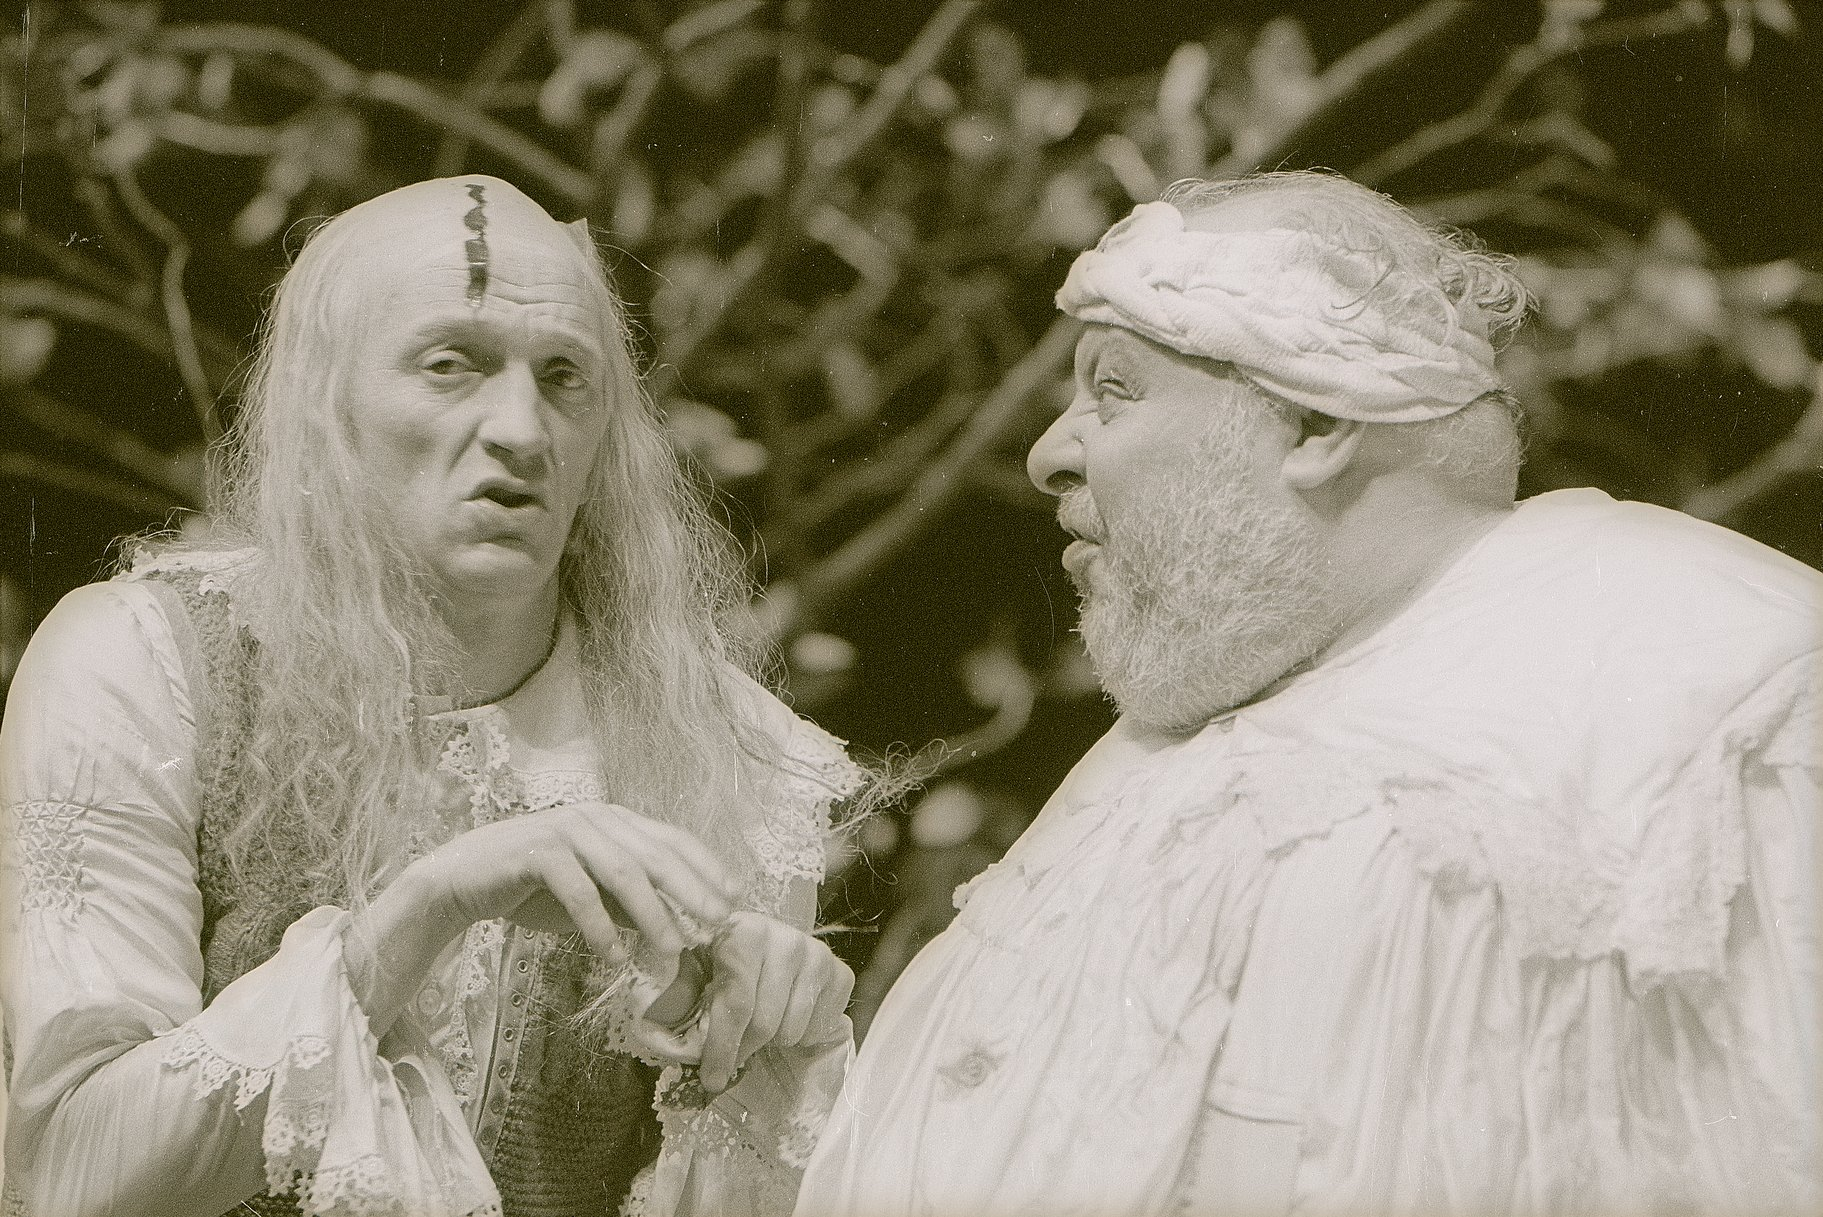 Sir Andrew (left) and Sir Toby (right) in conversation